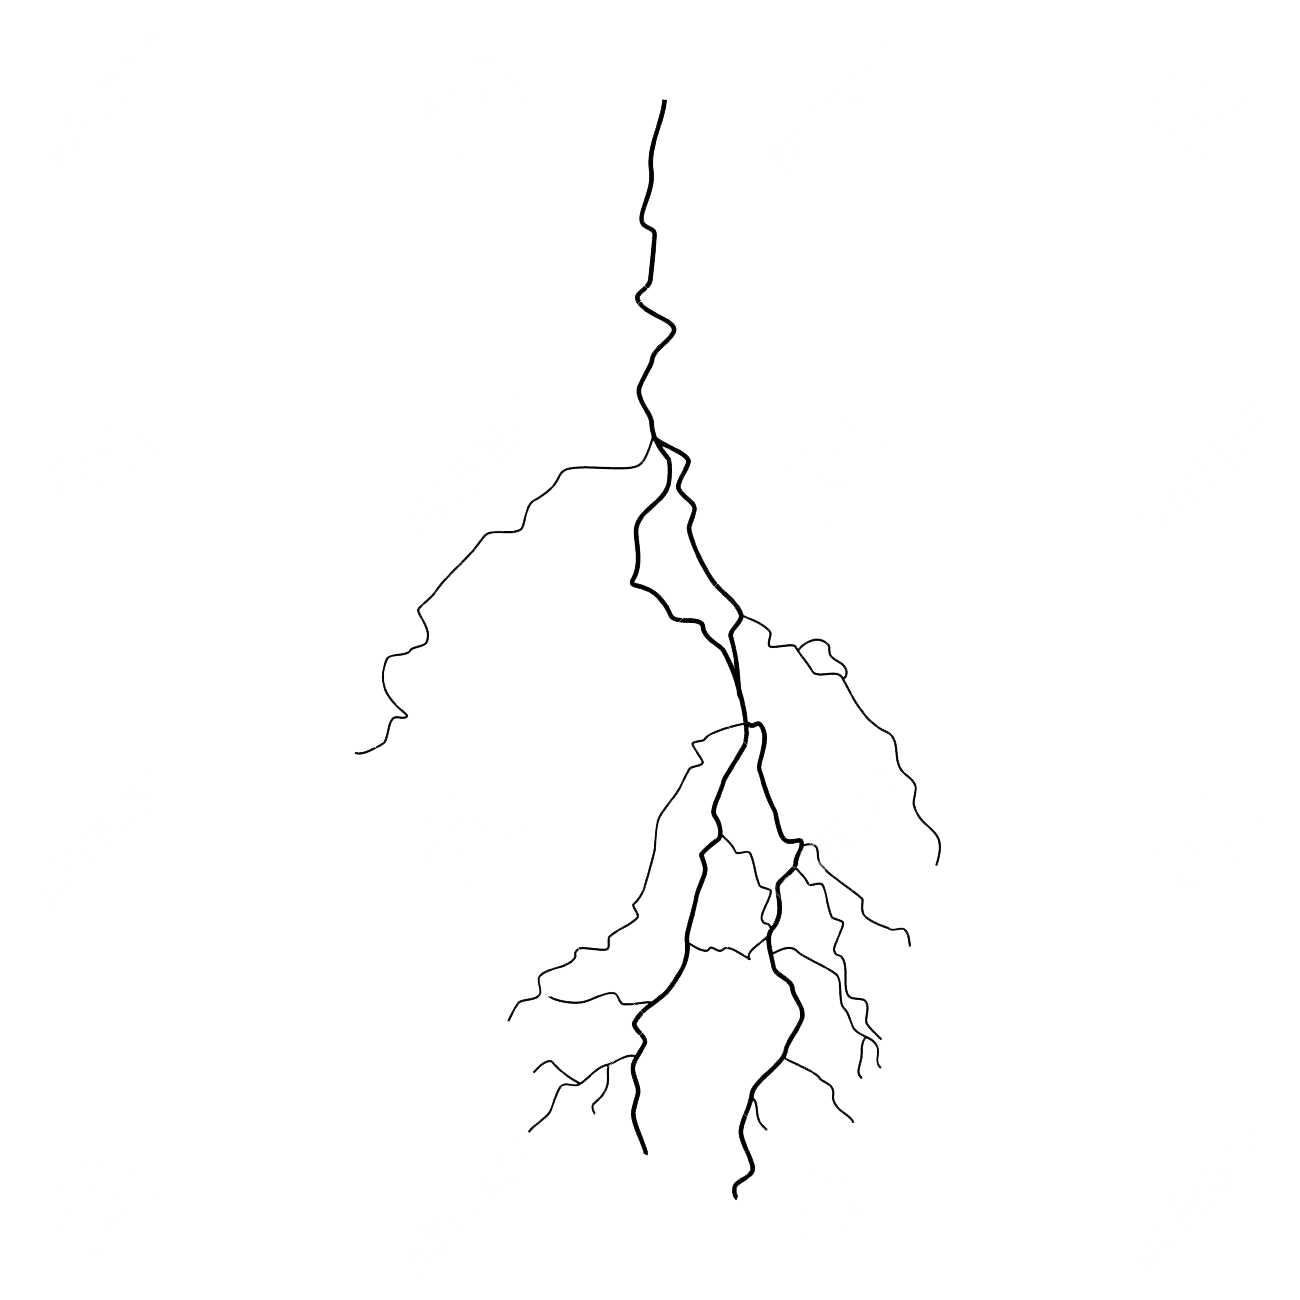 Lightning Png File.